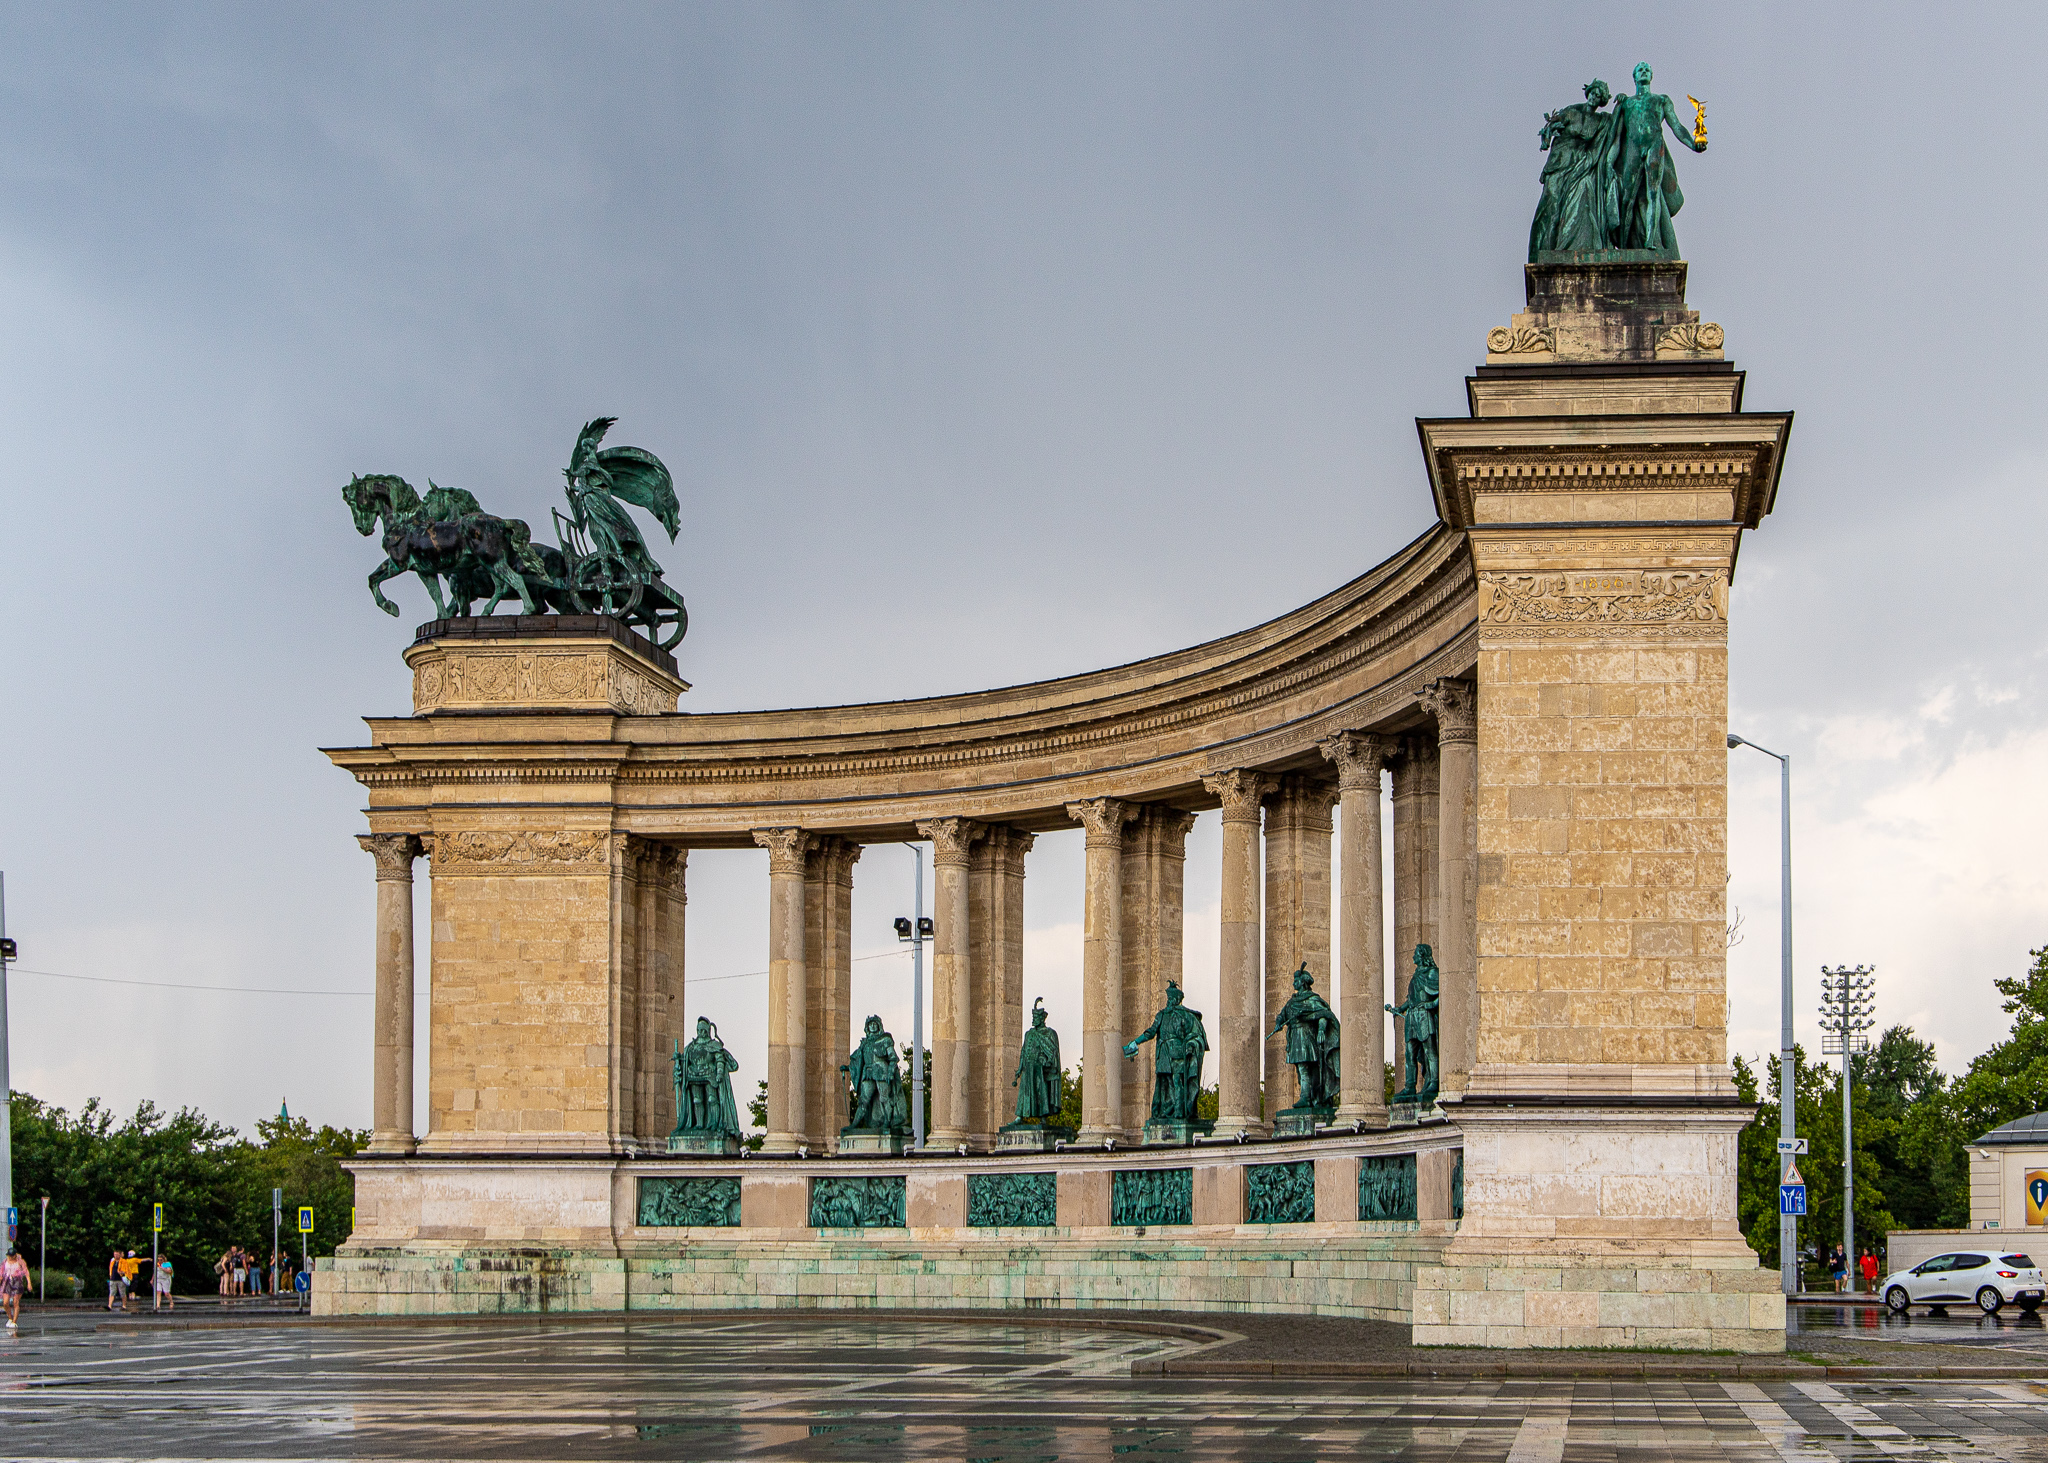 Right collonade with statues of Knowledge & Glory and Peace atop